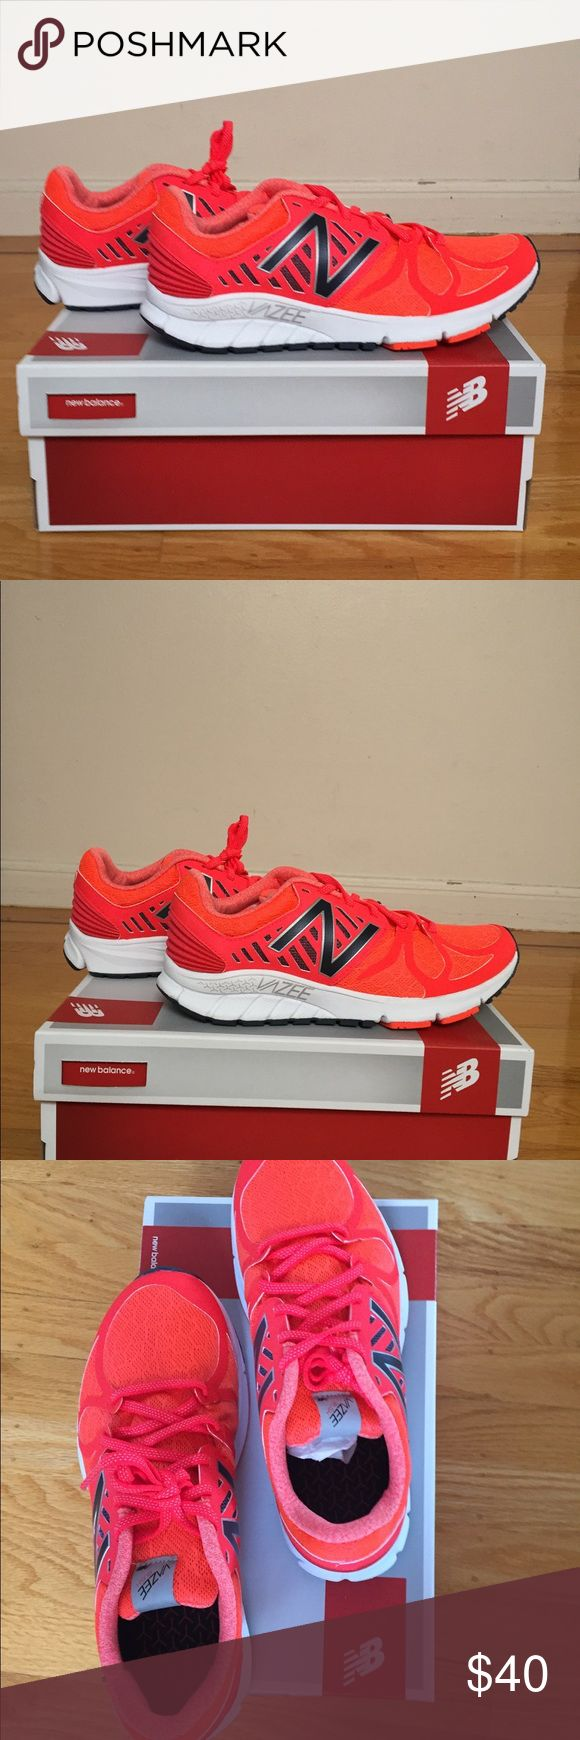 NEW! NEW BALANCE RUNNING SHOE MENS MRUSHOR NEW BALANCE RUNNING SHOES MENS. Light, comfortable, good running or walking shoes. They are an orange/red color. NEW WITH BOX, TAGS, PACKAGING! New Balance Shoes Sneakers